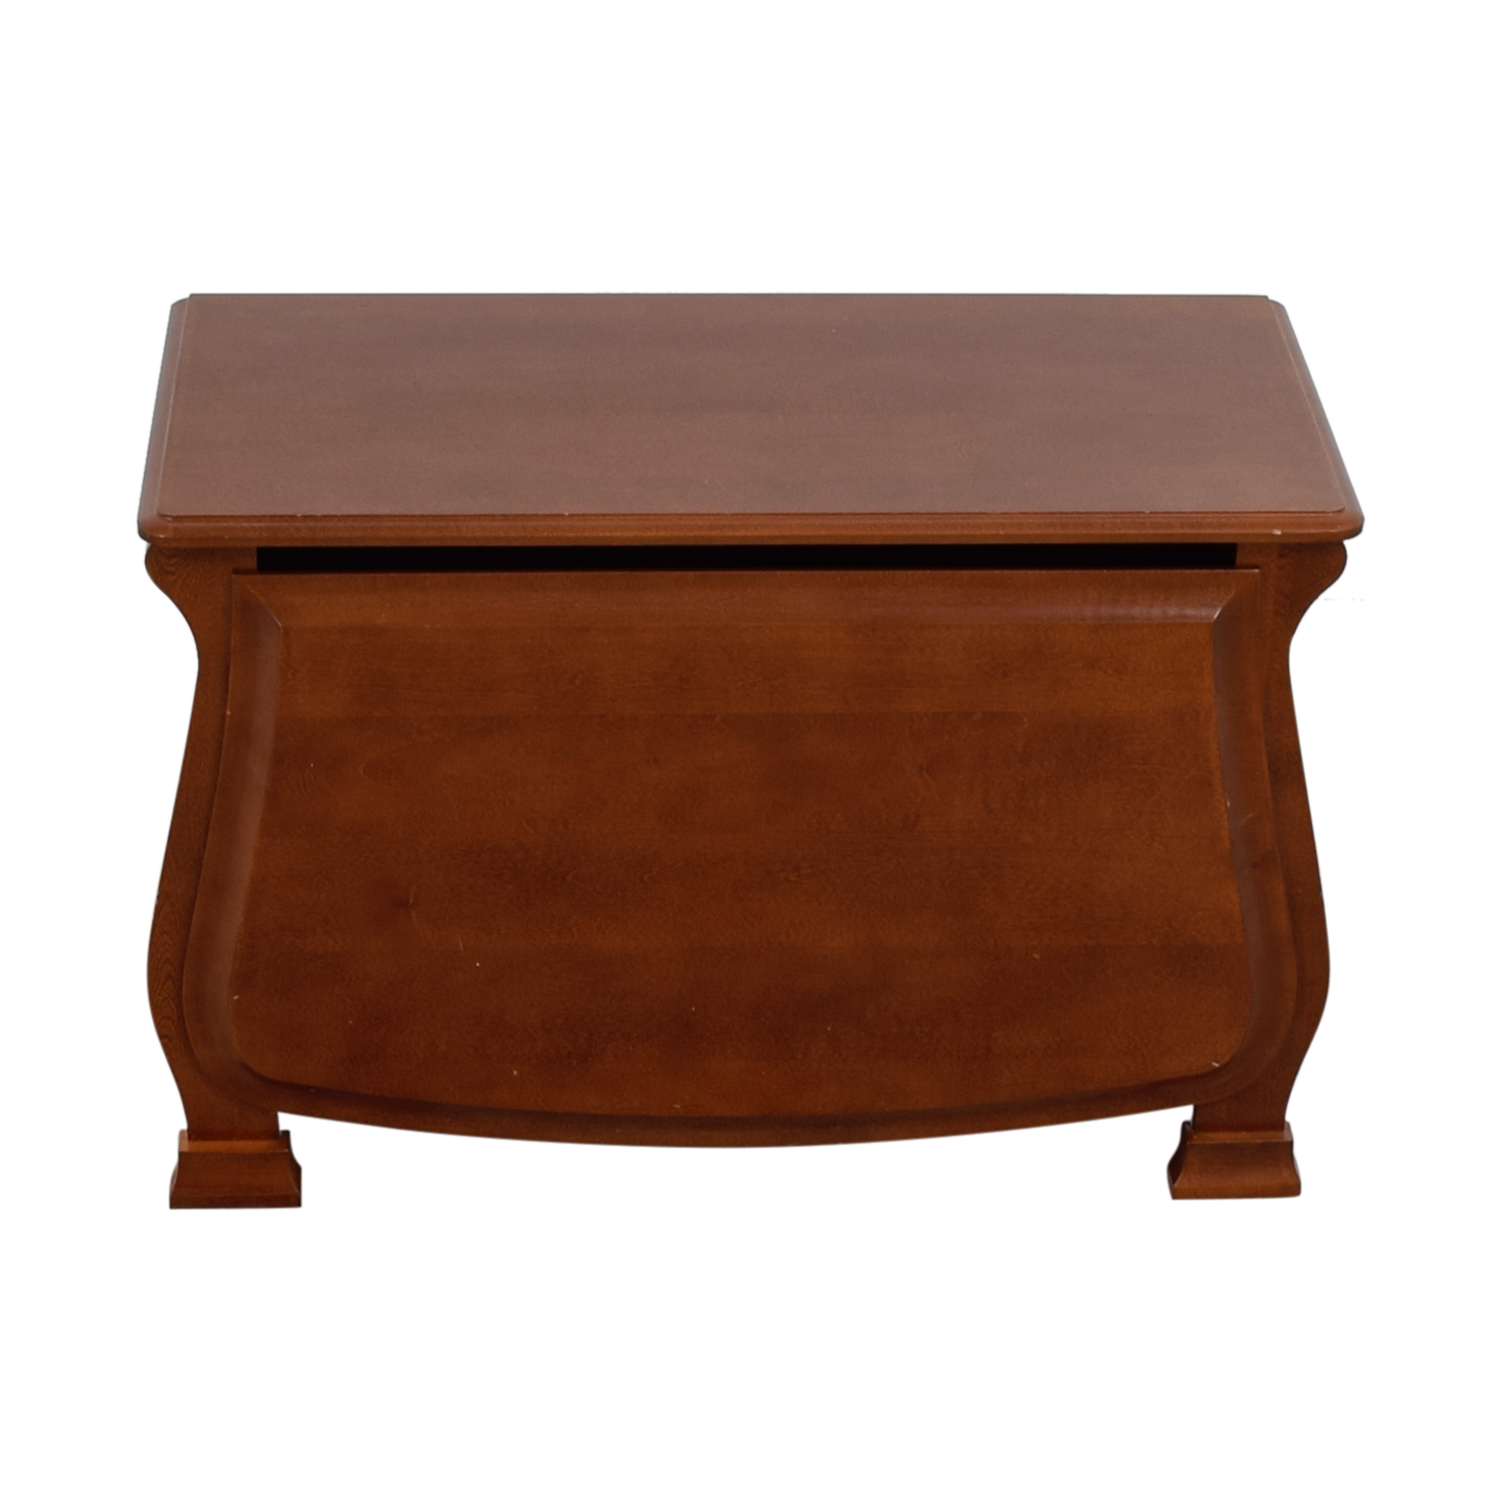 Pottery Barn Wood Toy Chest / Trunks